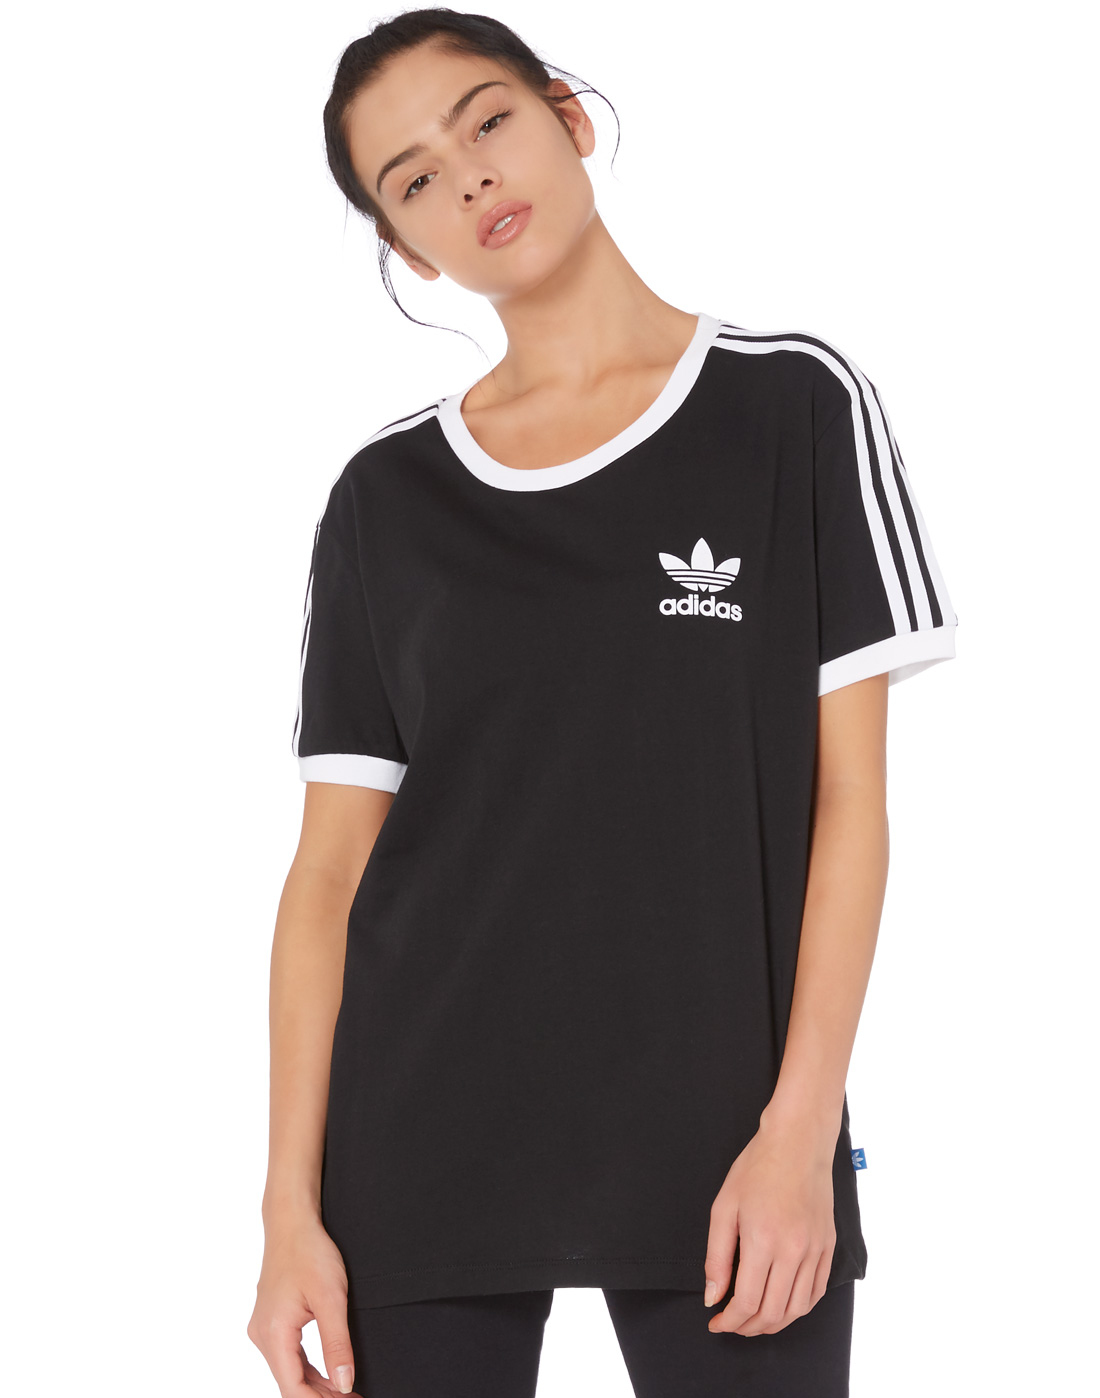 ff14903d adidas Originals Womens 3 Stripe T-Shirt | Life Style Sports